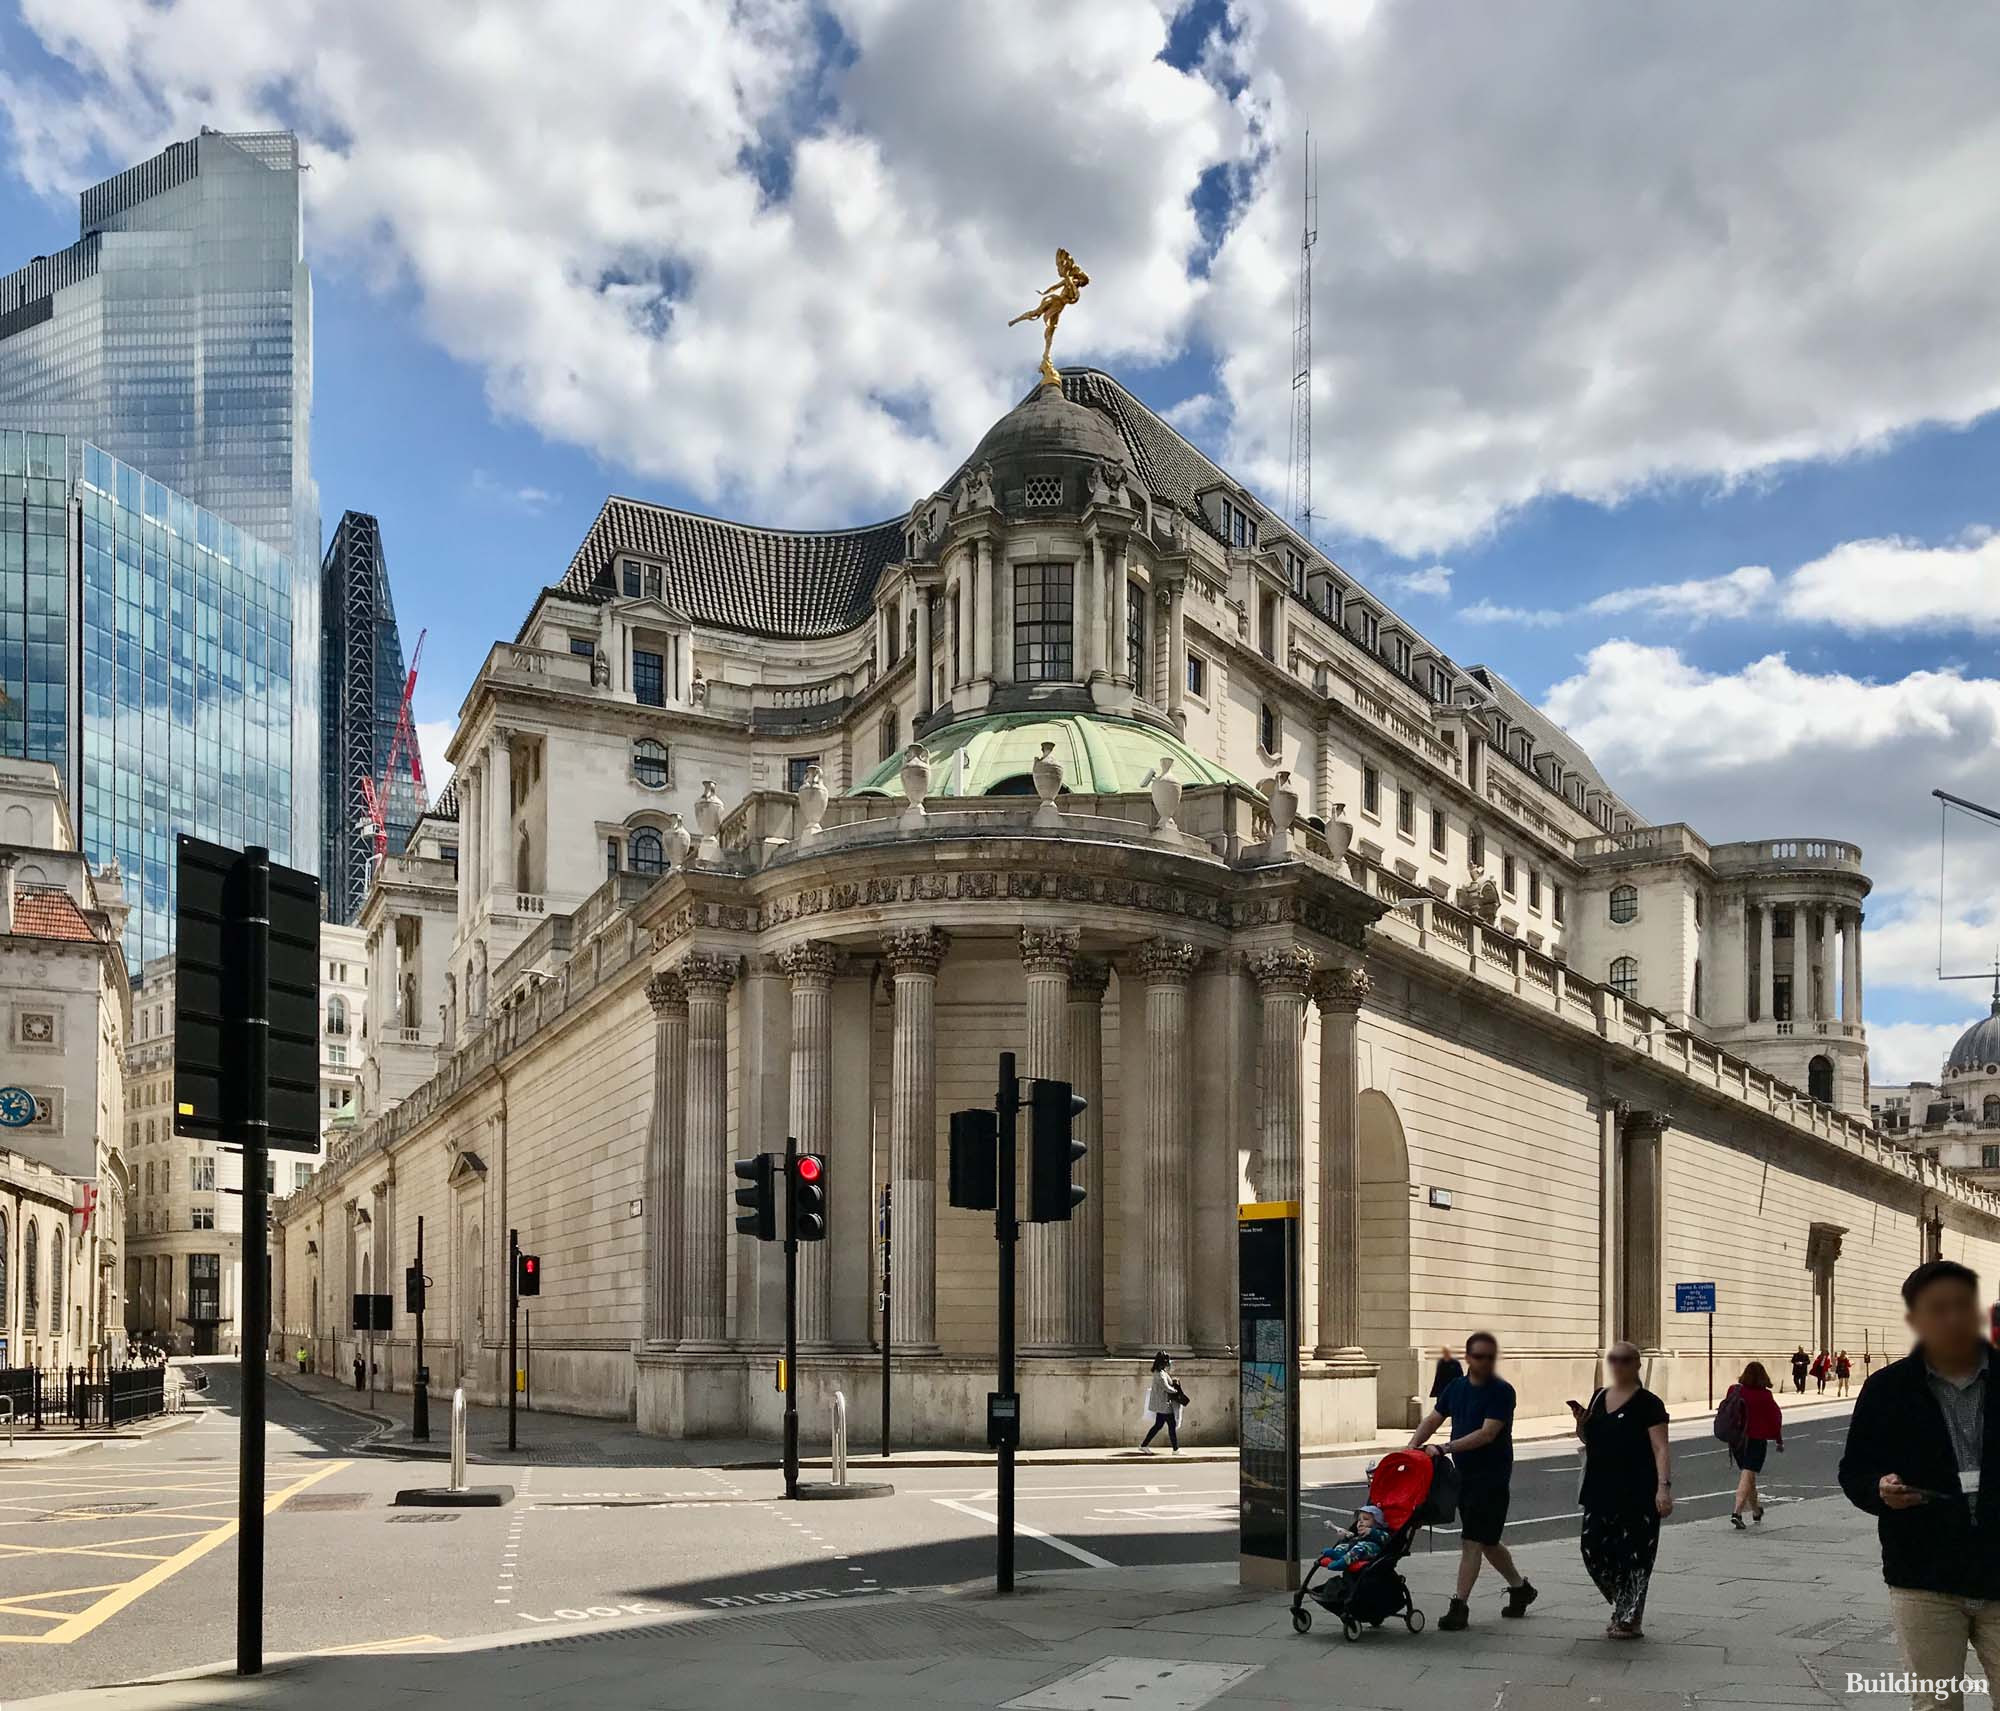 Bank of England building on the corner of Lothbury and Princes Street in the City of London EC2.